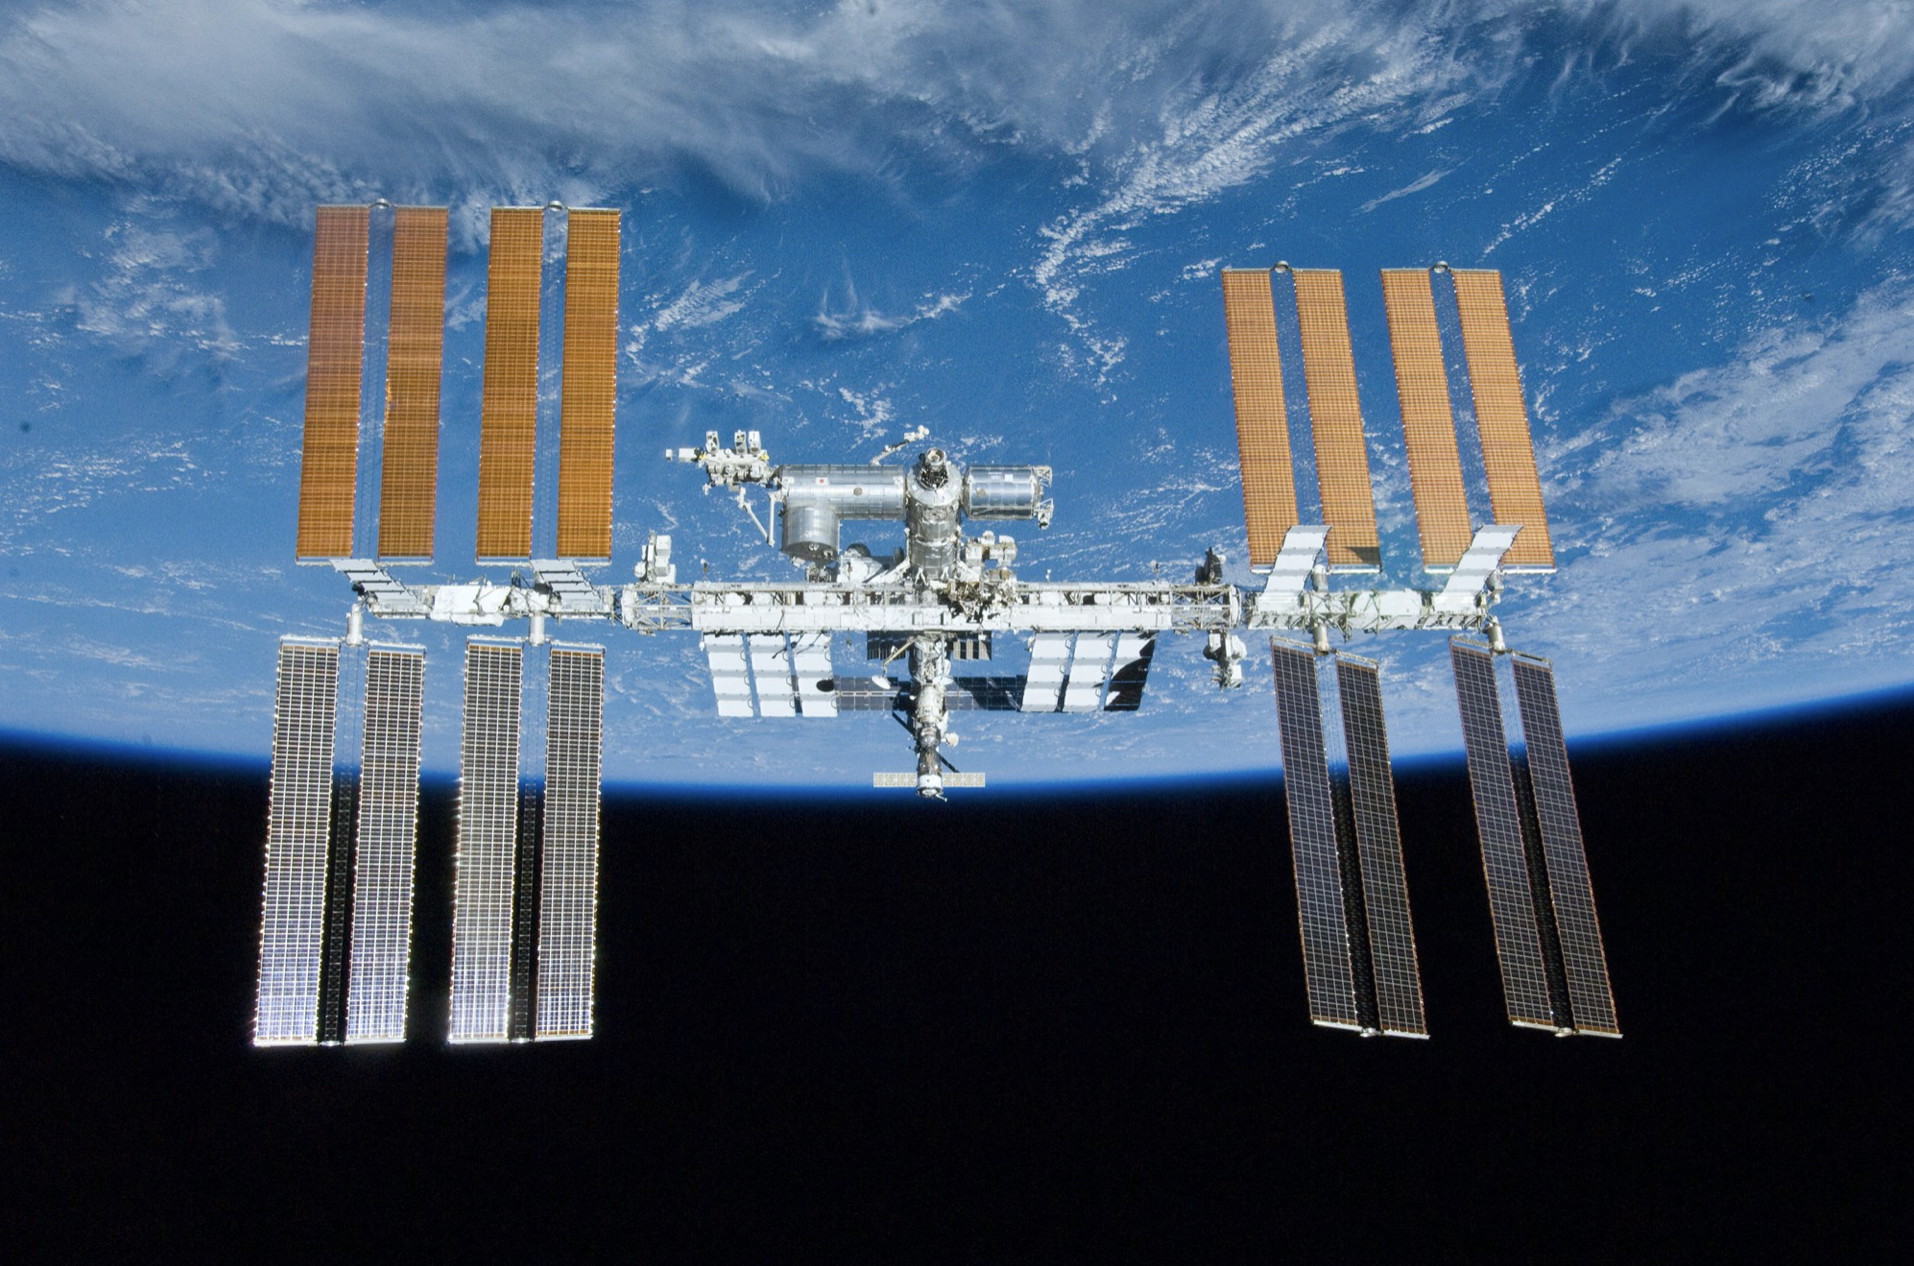 The Future of the International Space Station